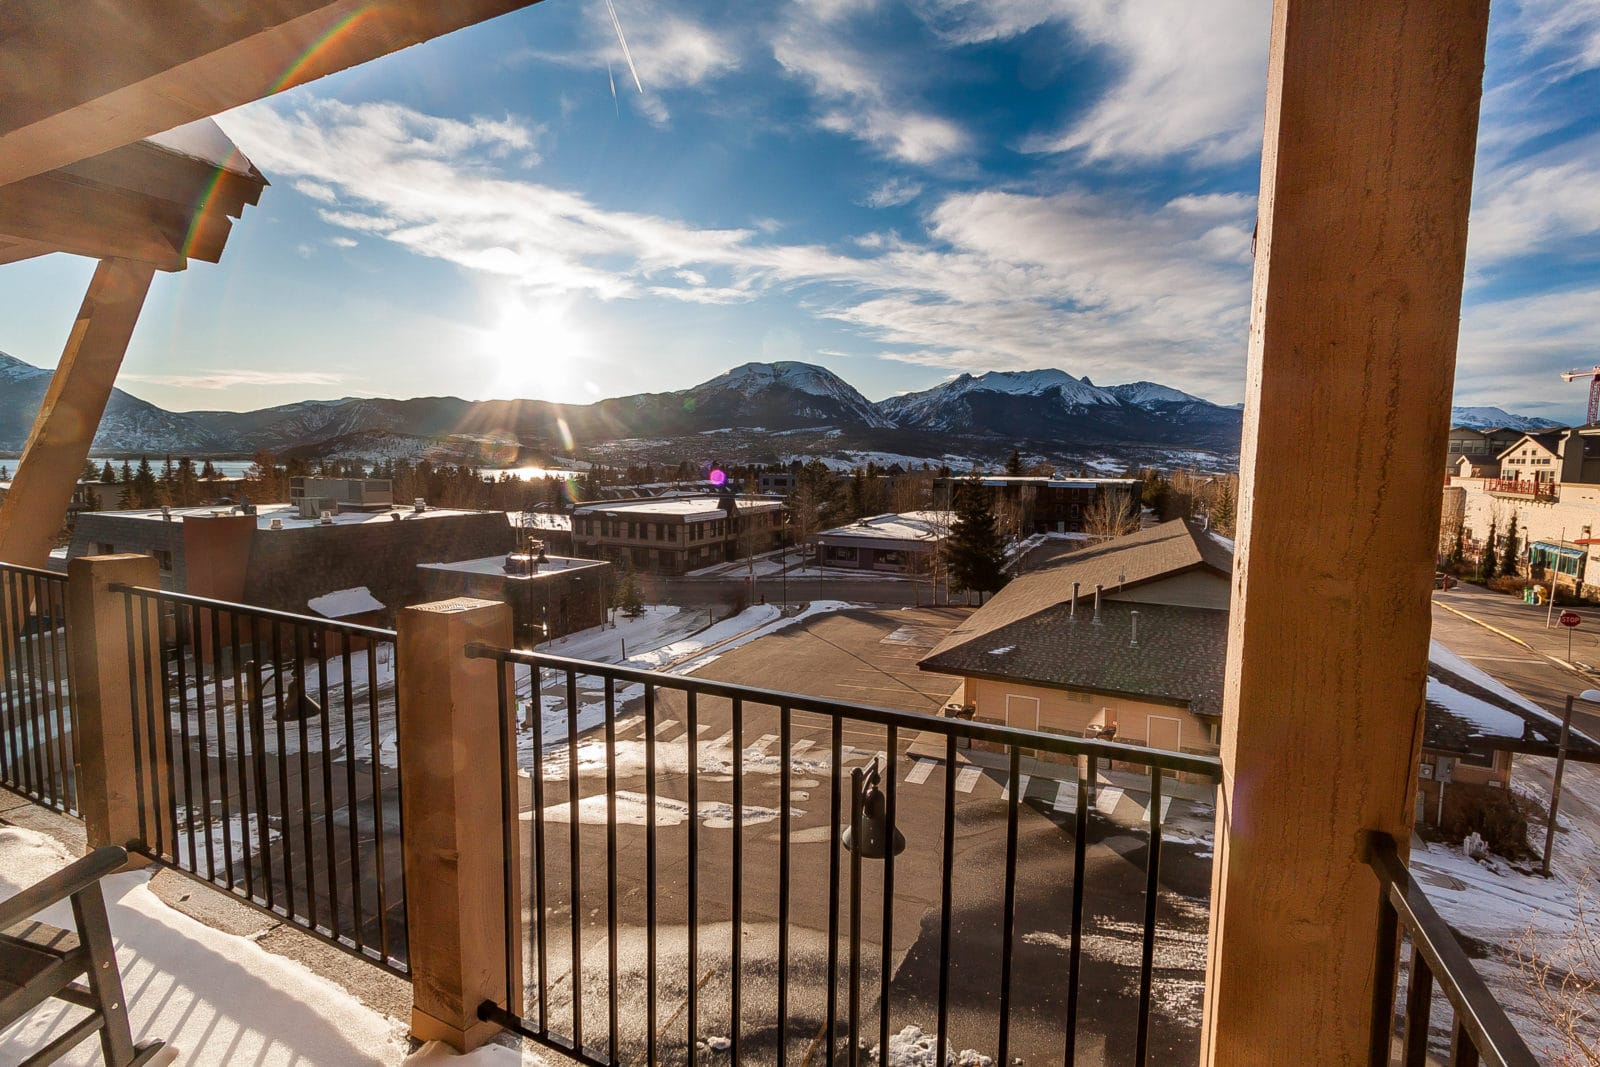 View from Sail Lofts in Dillon, CO balcony